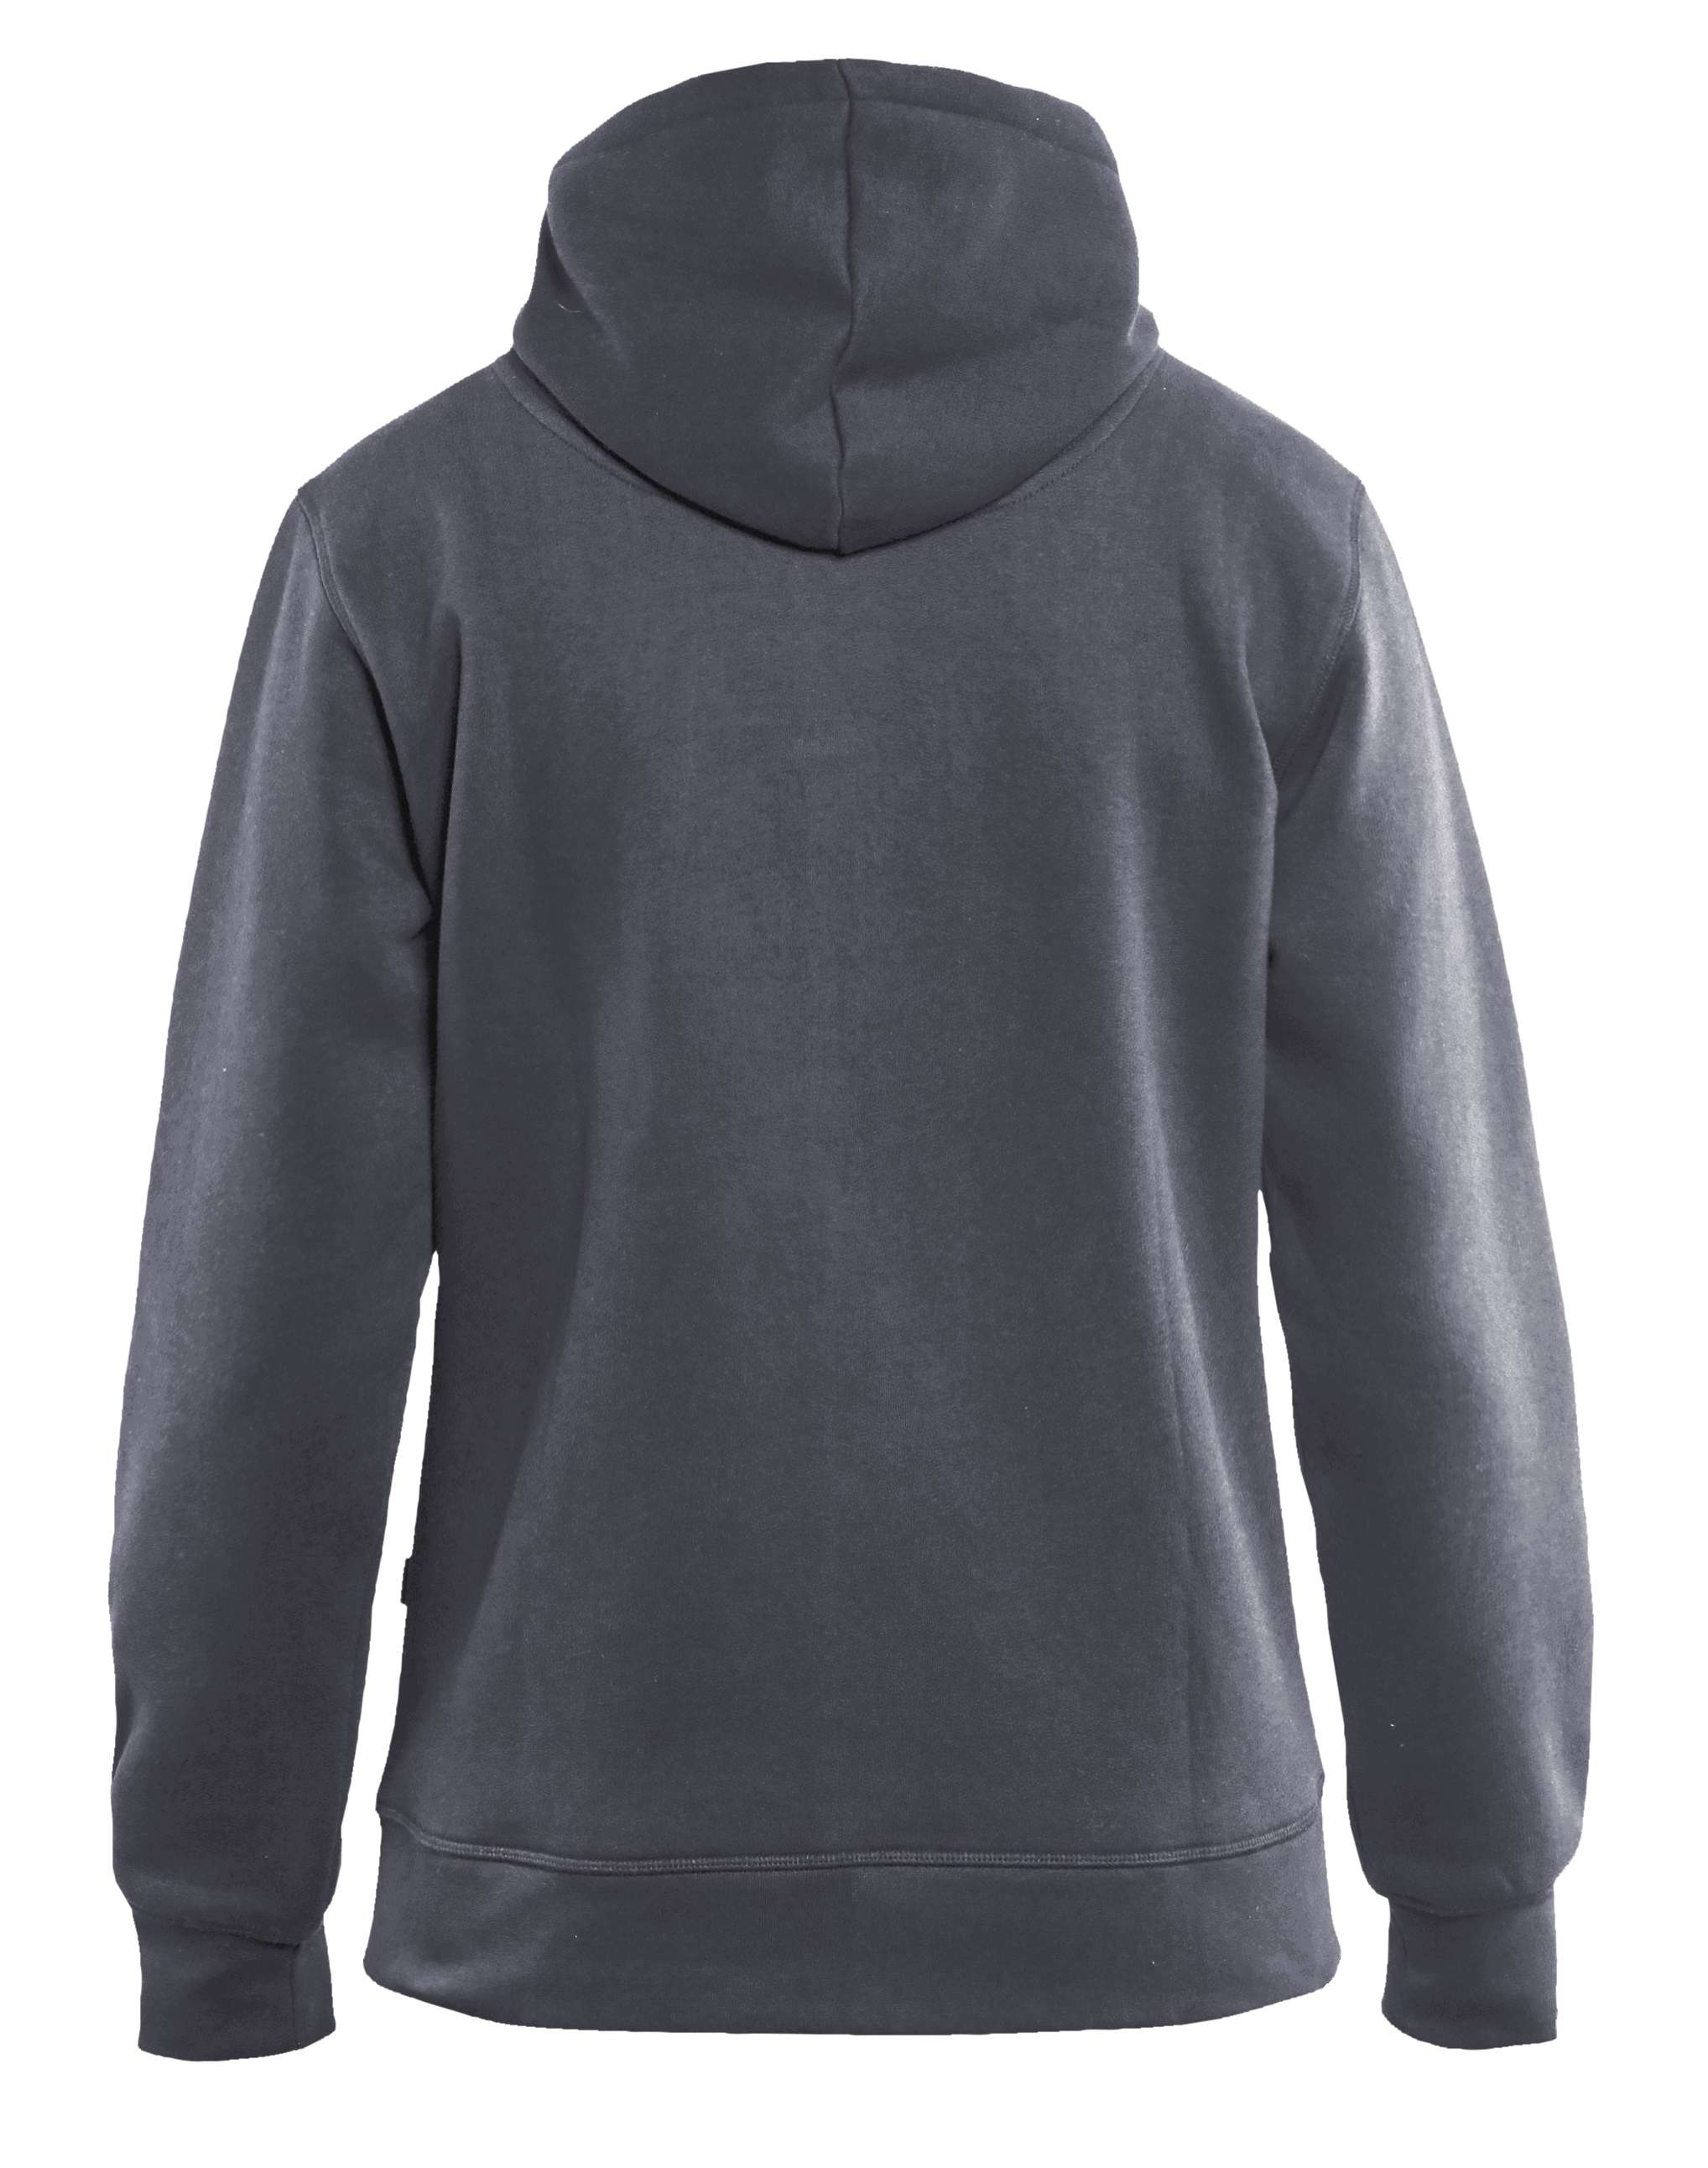 Blaklader Dames hooded sweatvesten 33951048 grijs(9400)